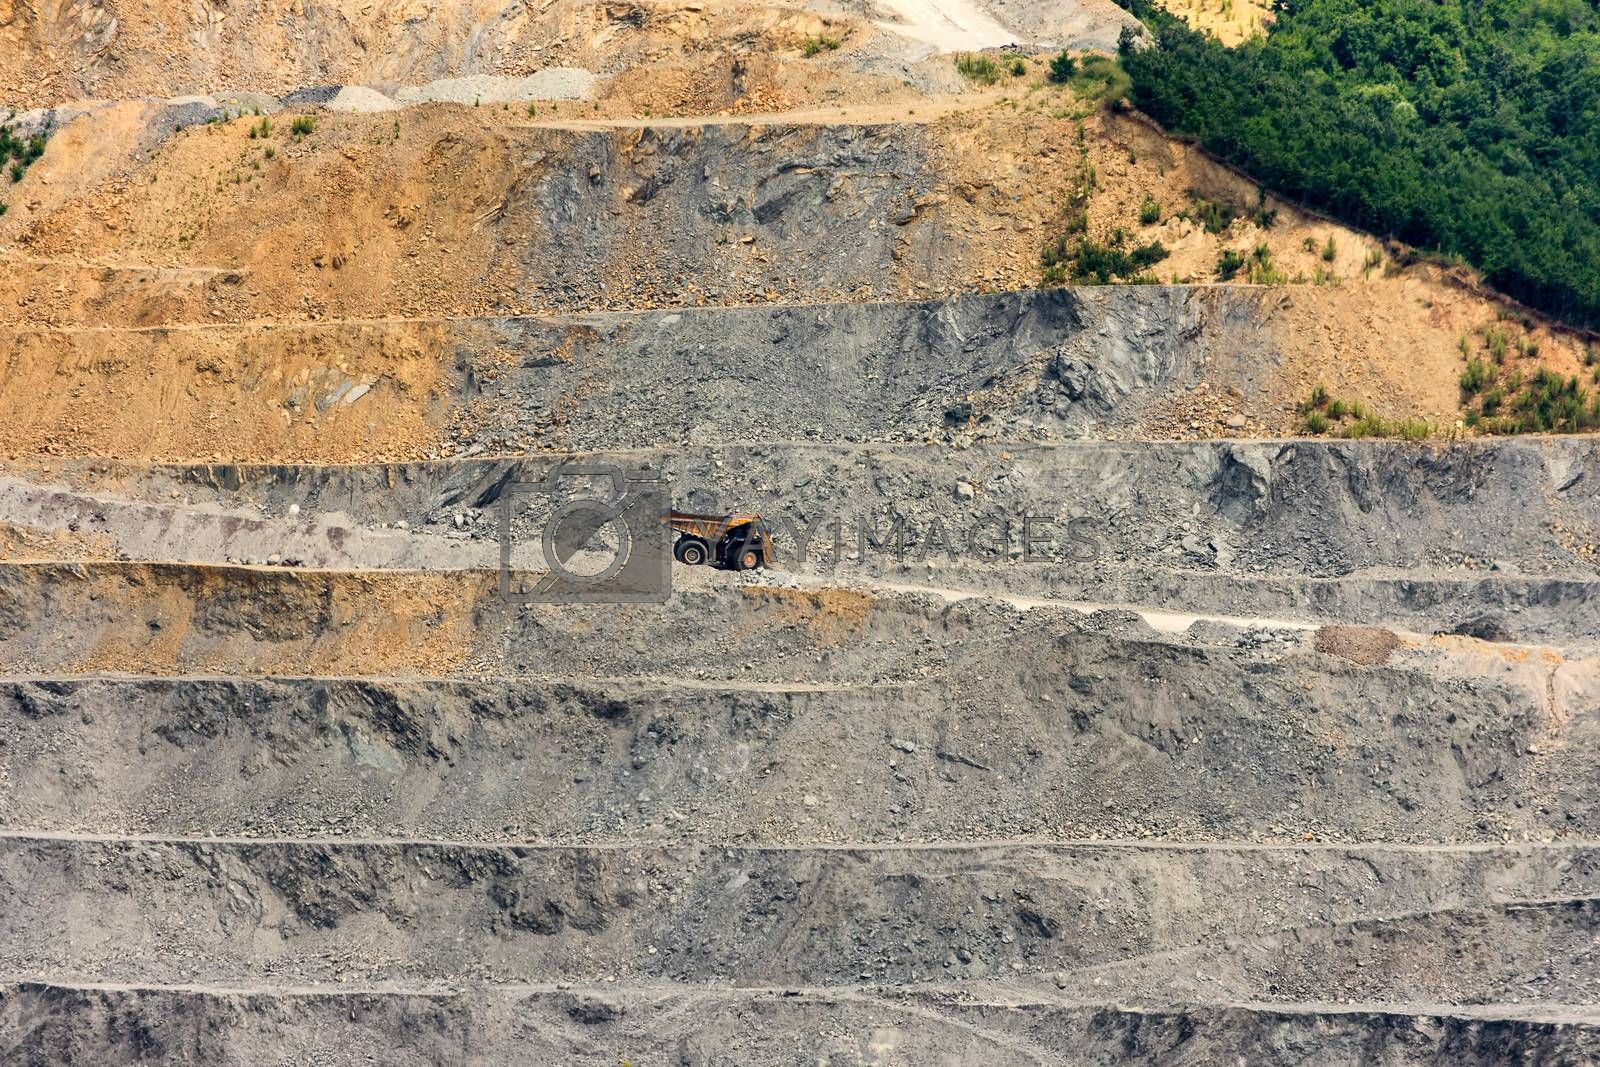 Bor / Serbia - July 13, 2019: Damper truck transporting ore in the Veliki Krivelj mine of Zijin Bor Copper, one of the largest copper mines in the world, owned by Chinese mining company Zijin Mining